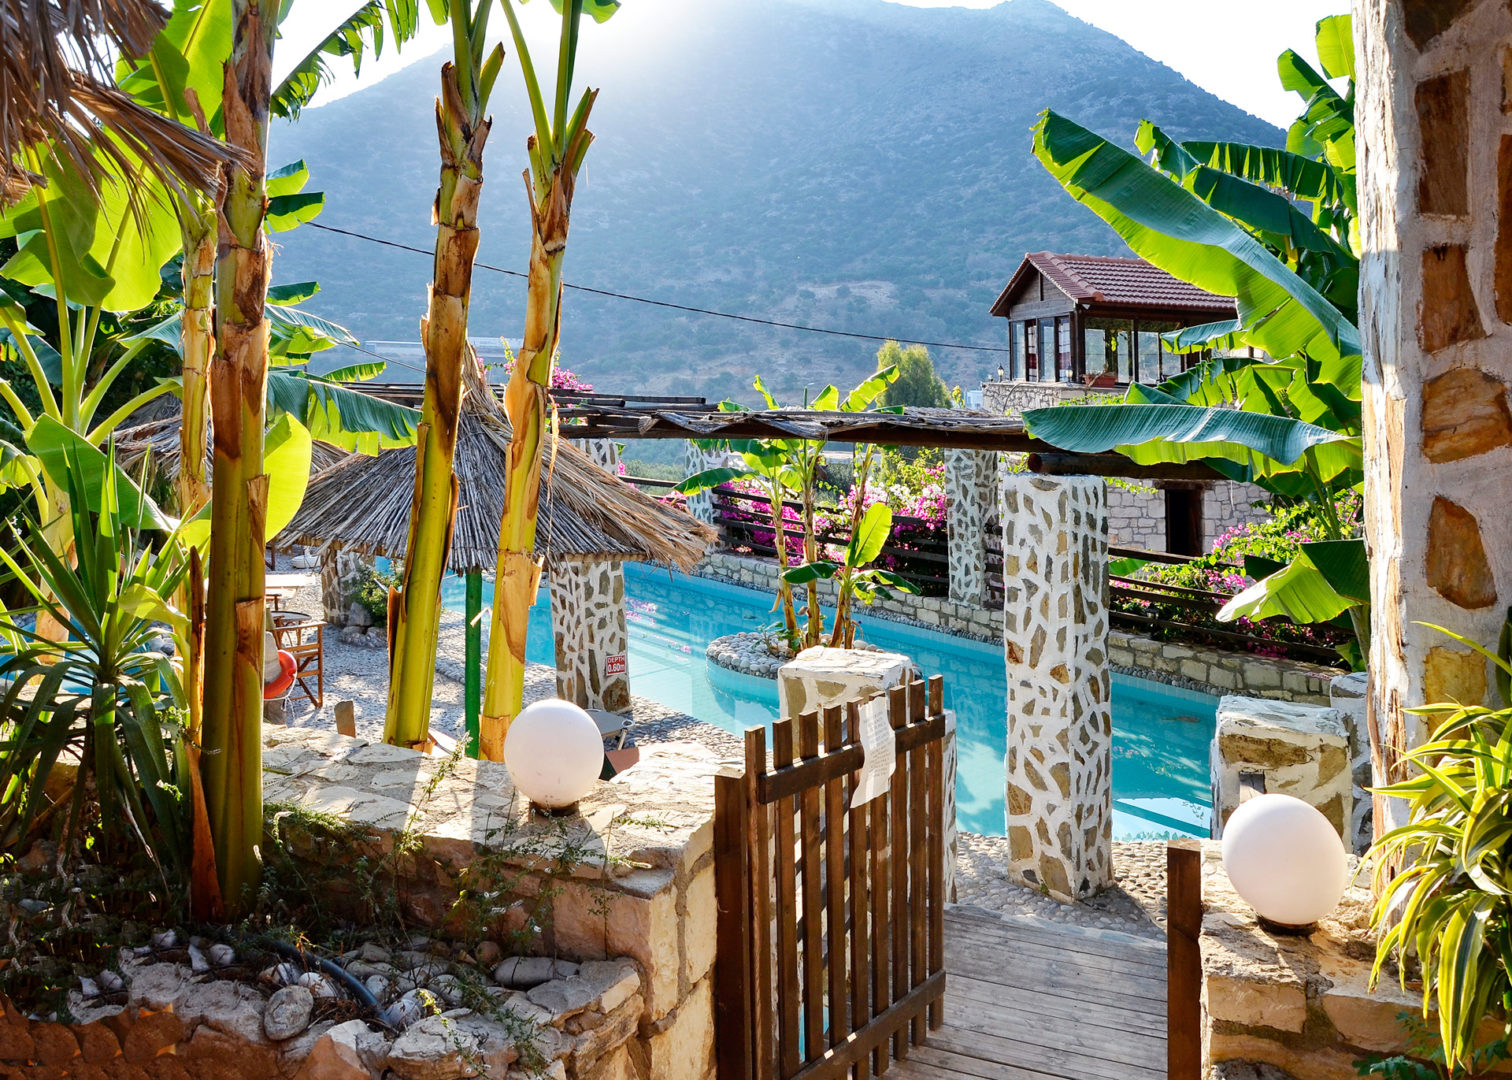 Hotel in Bali Crete - Stone Village - Medium Swimming Pool 7